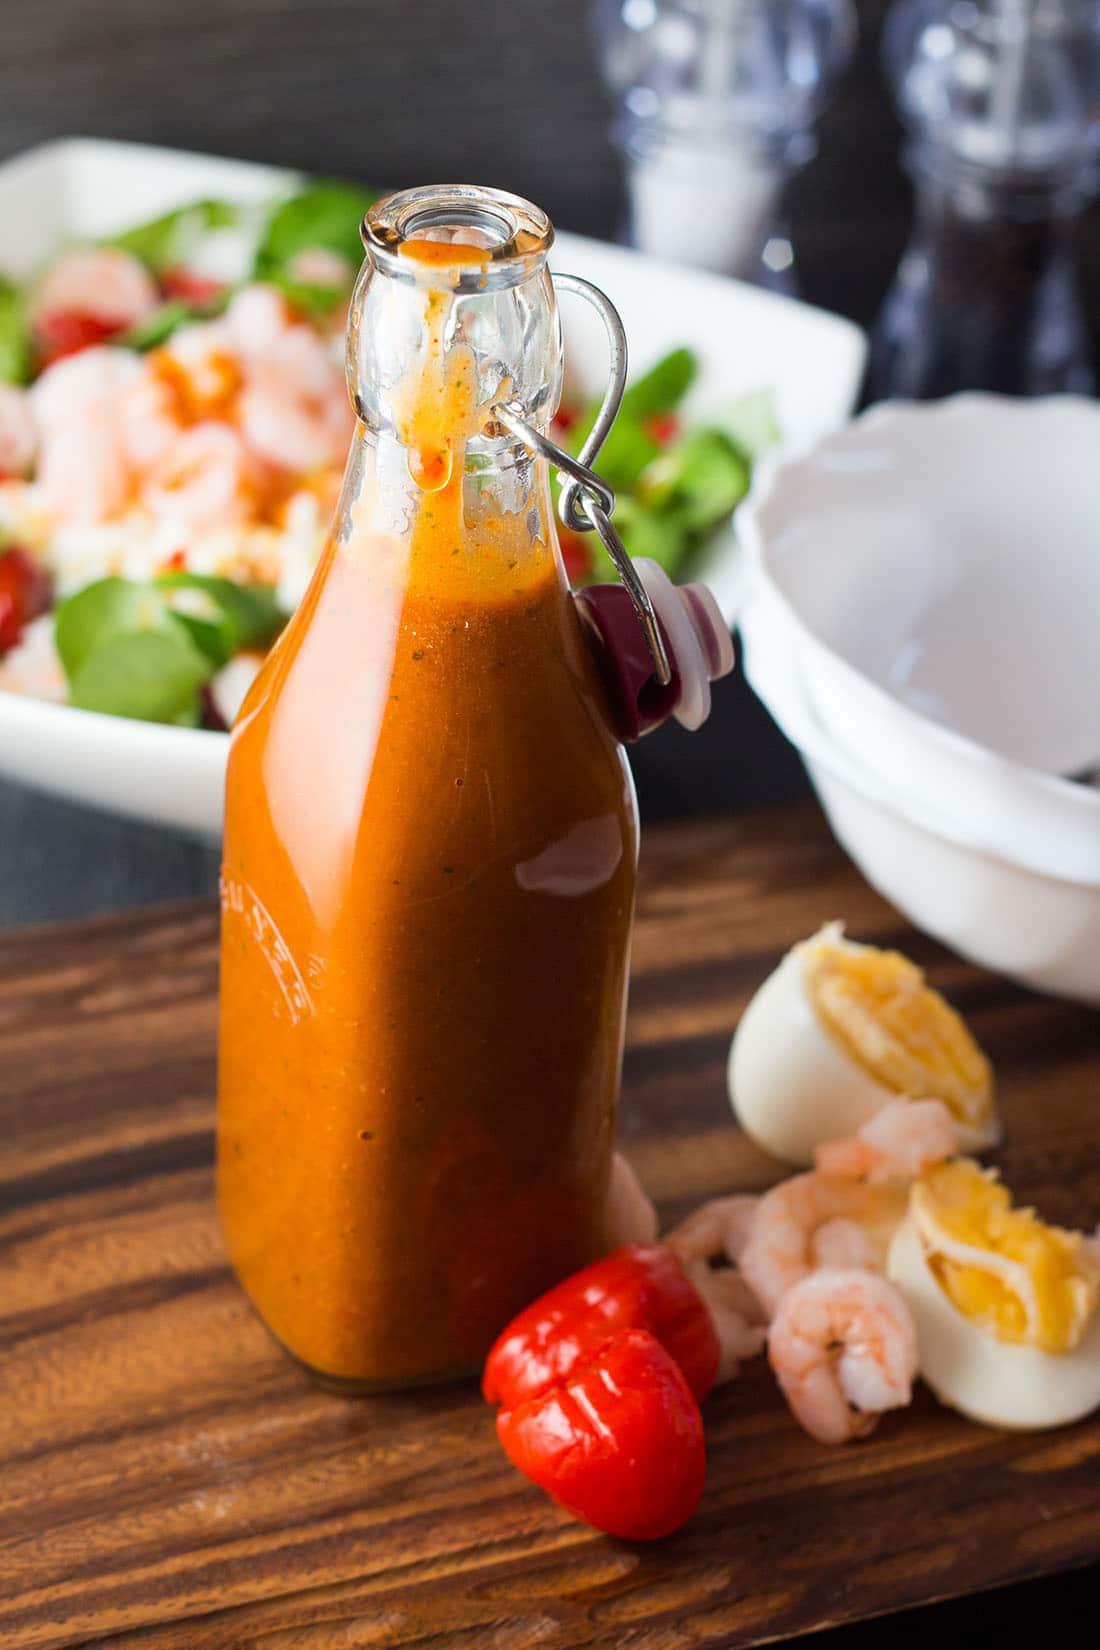 My Catalina Style Peppadew Salad Dressing